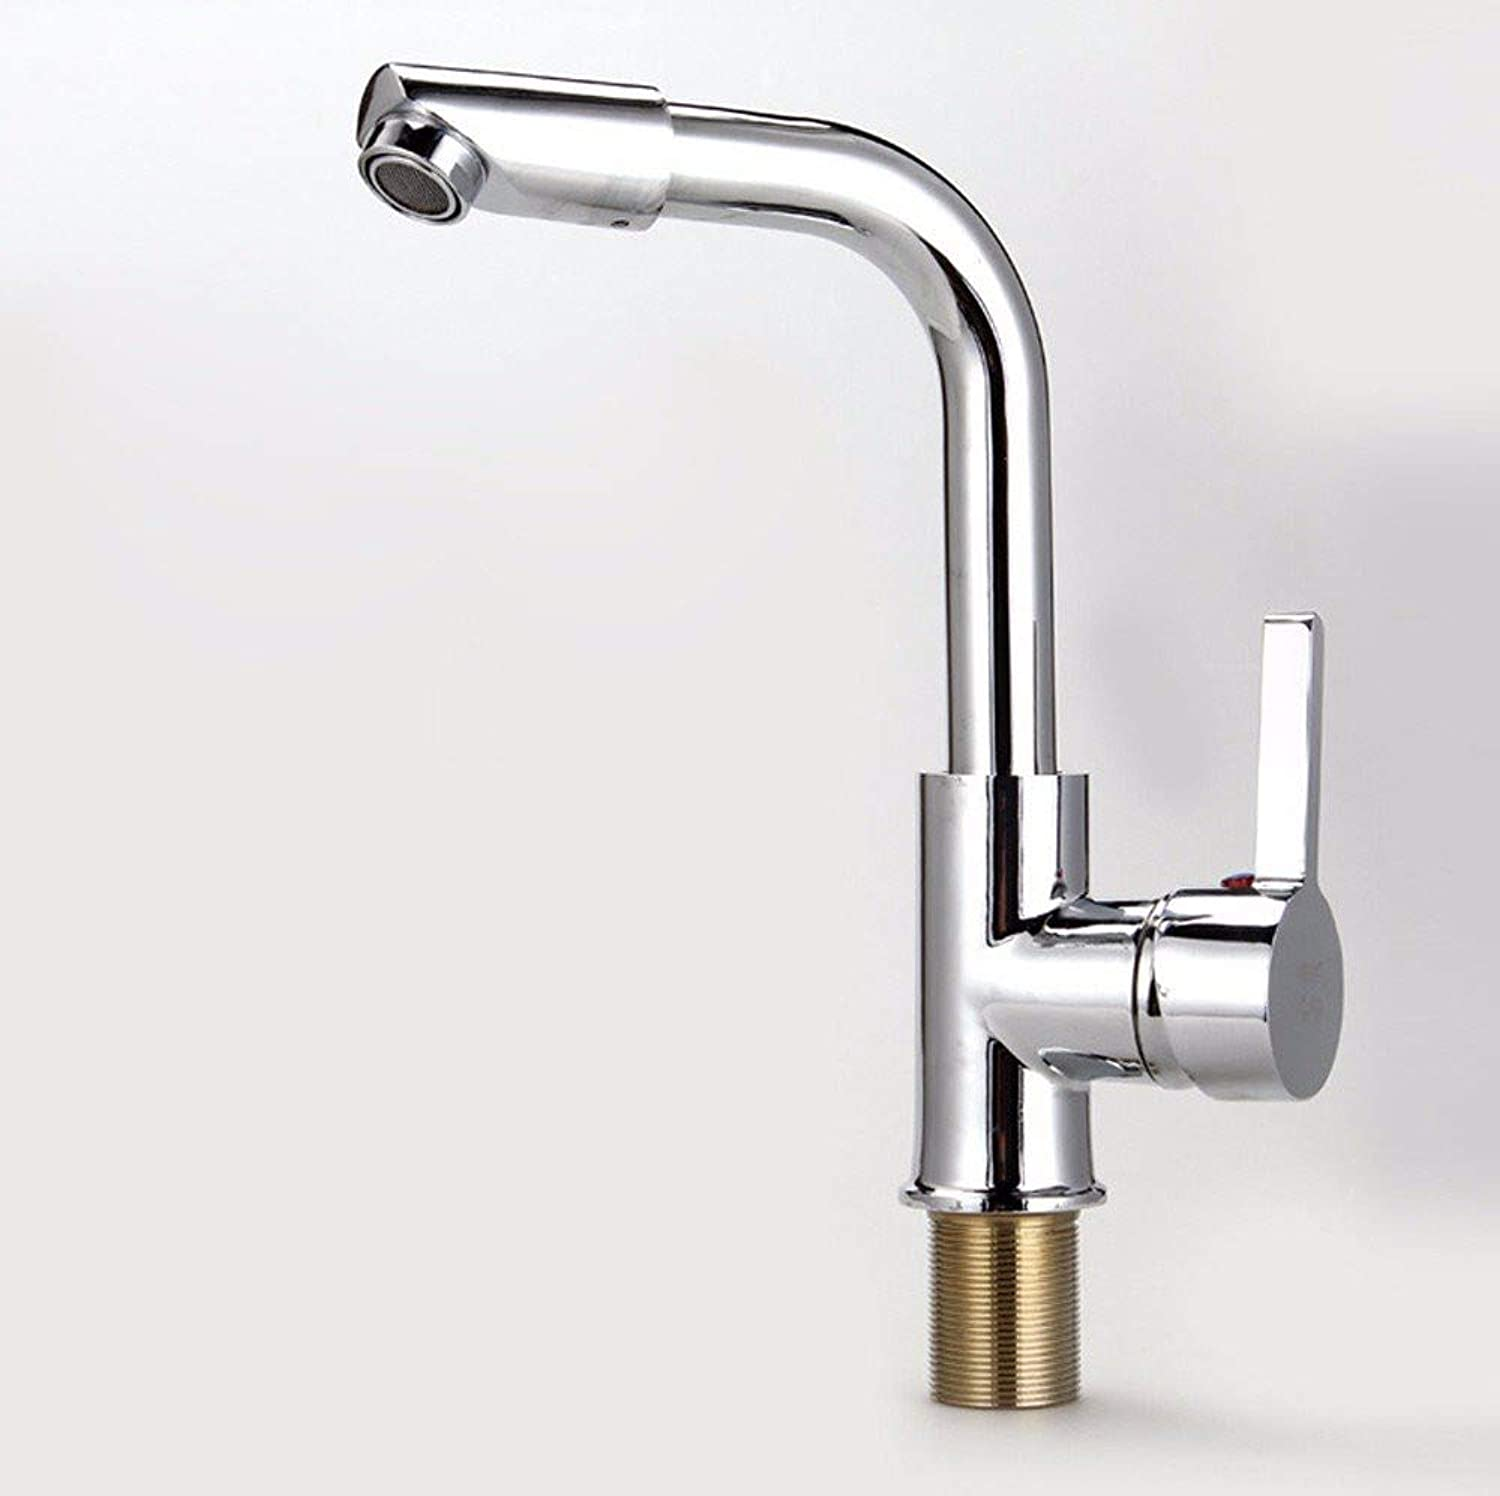 360° redating Faucet Retro Faucetkitchen Alloy Hot and Cold Shower redate The Basin High Quality Faucet